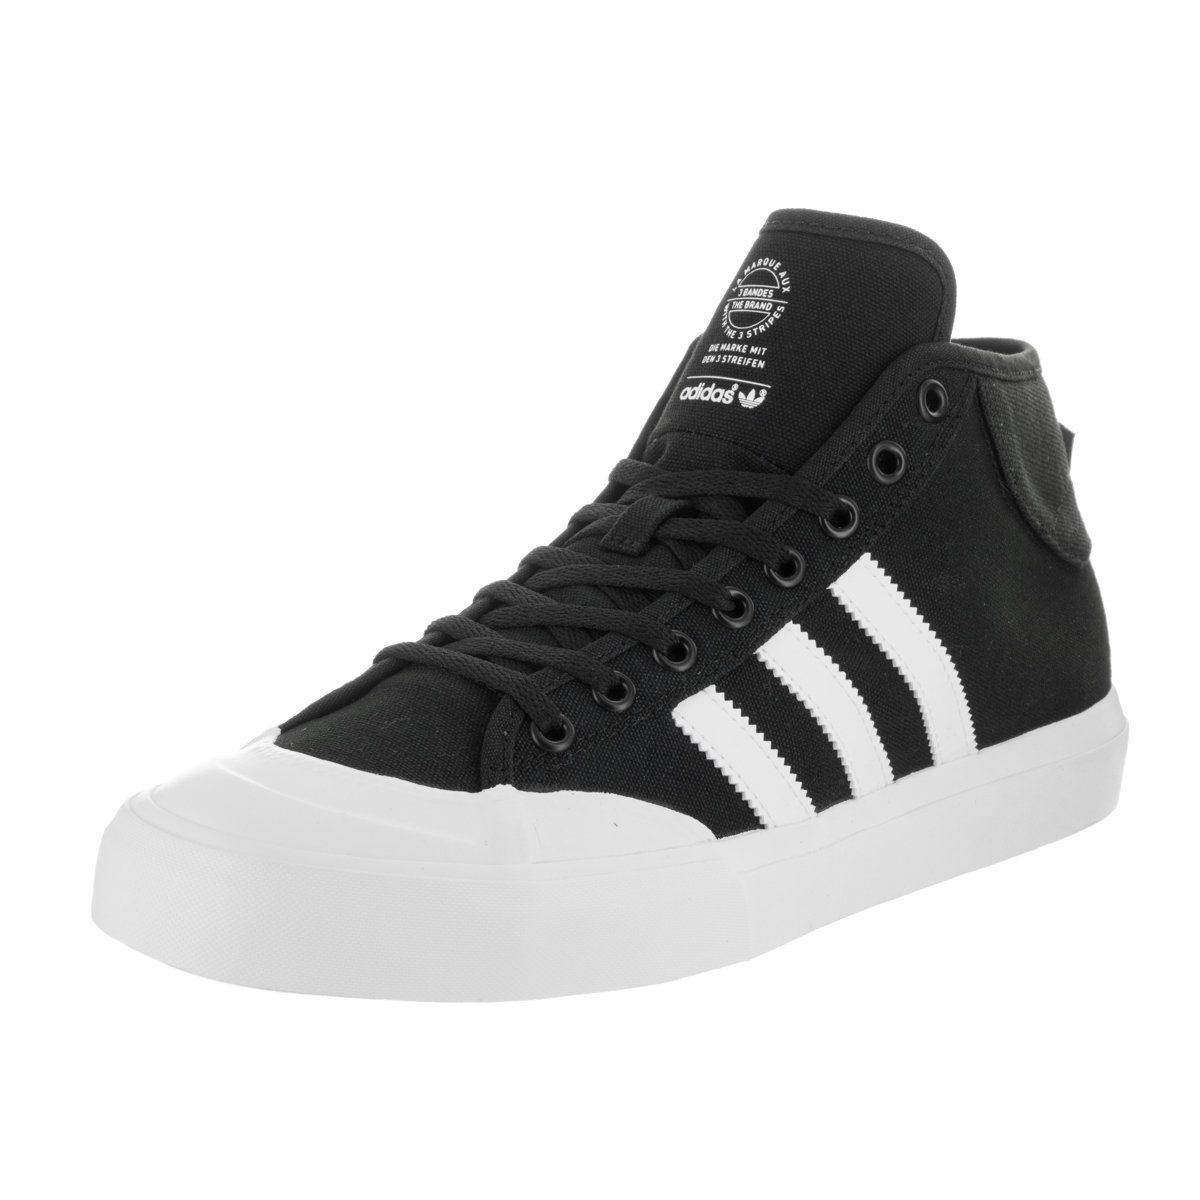 save off d60e0 75cbb Adidas Mens Matchcourt Mid Skate Shoes